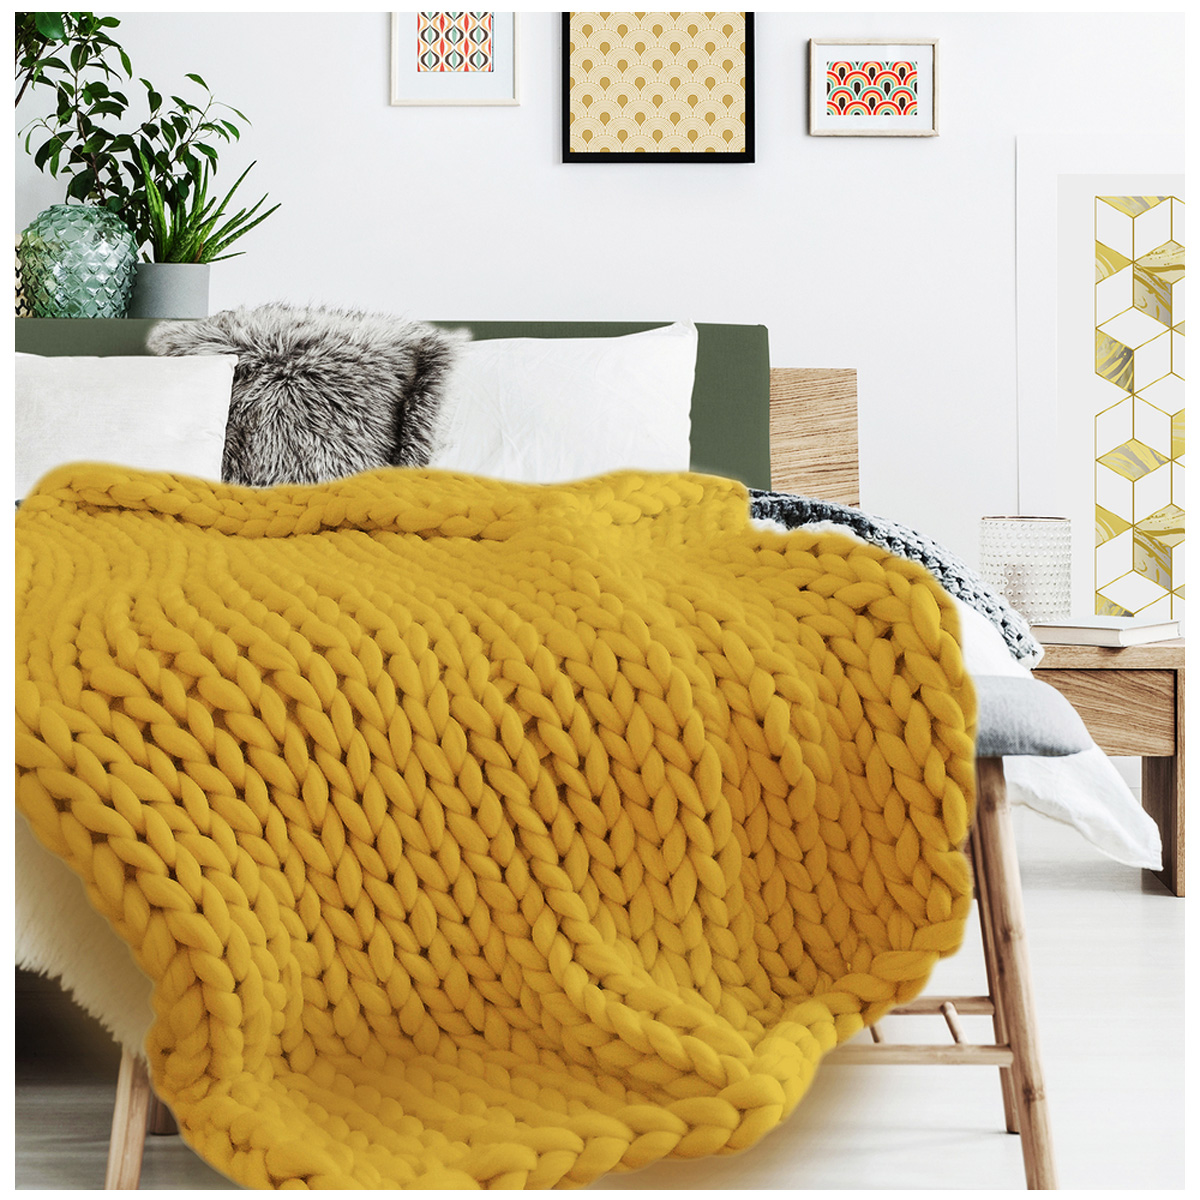 Plaid acrylique \'Chunky Knit\' ocre moutarde (tricot) - 150x120 cm - [R1075]